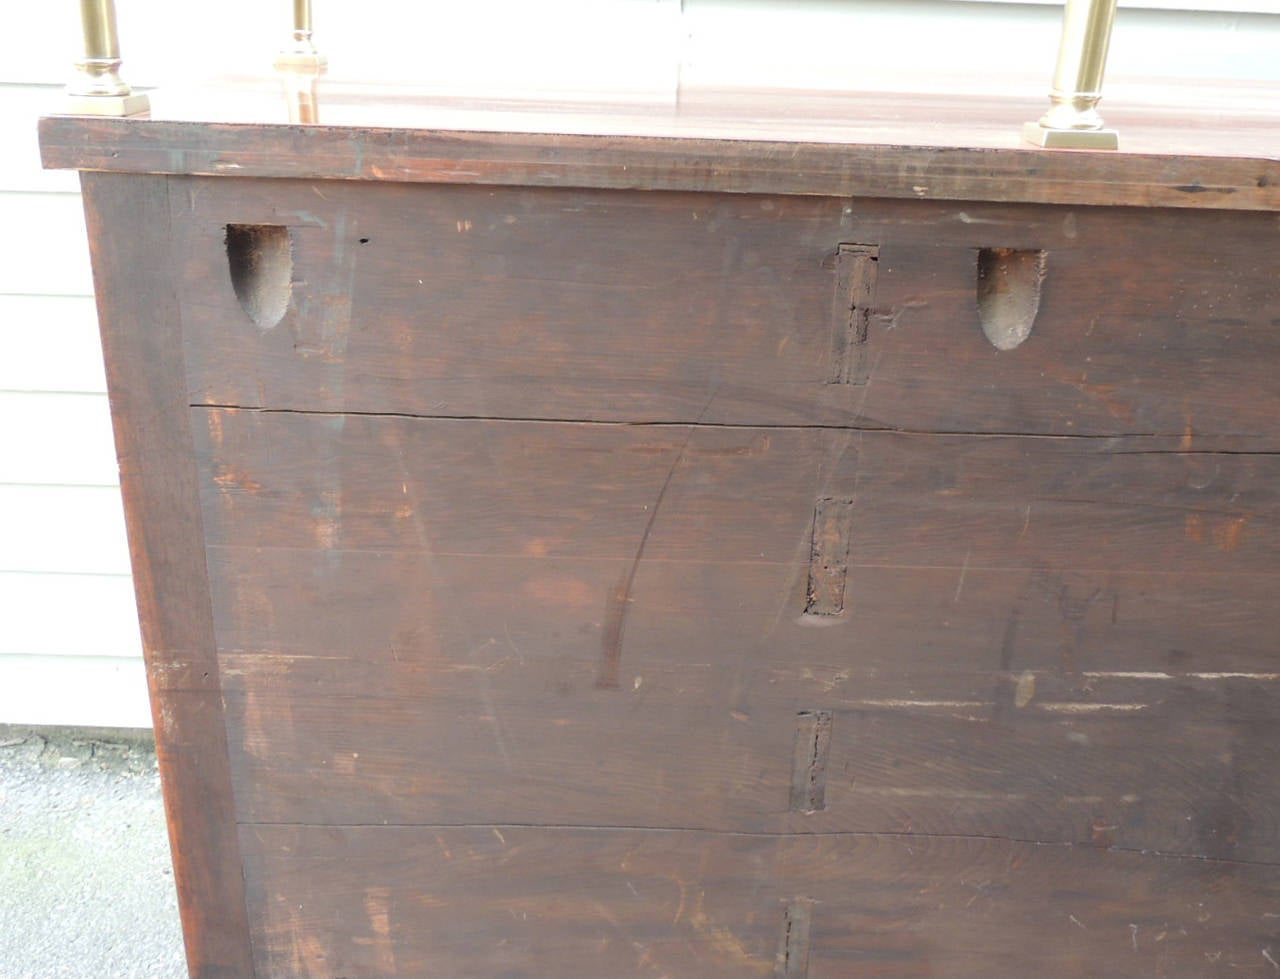 American Classical Early 19th C Virginia Sheraton Mahogany Sideboard with Gallery For Sale